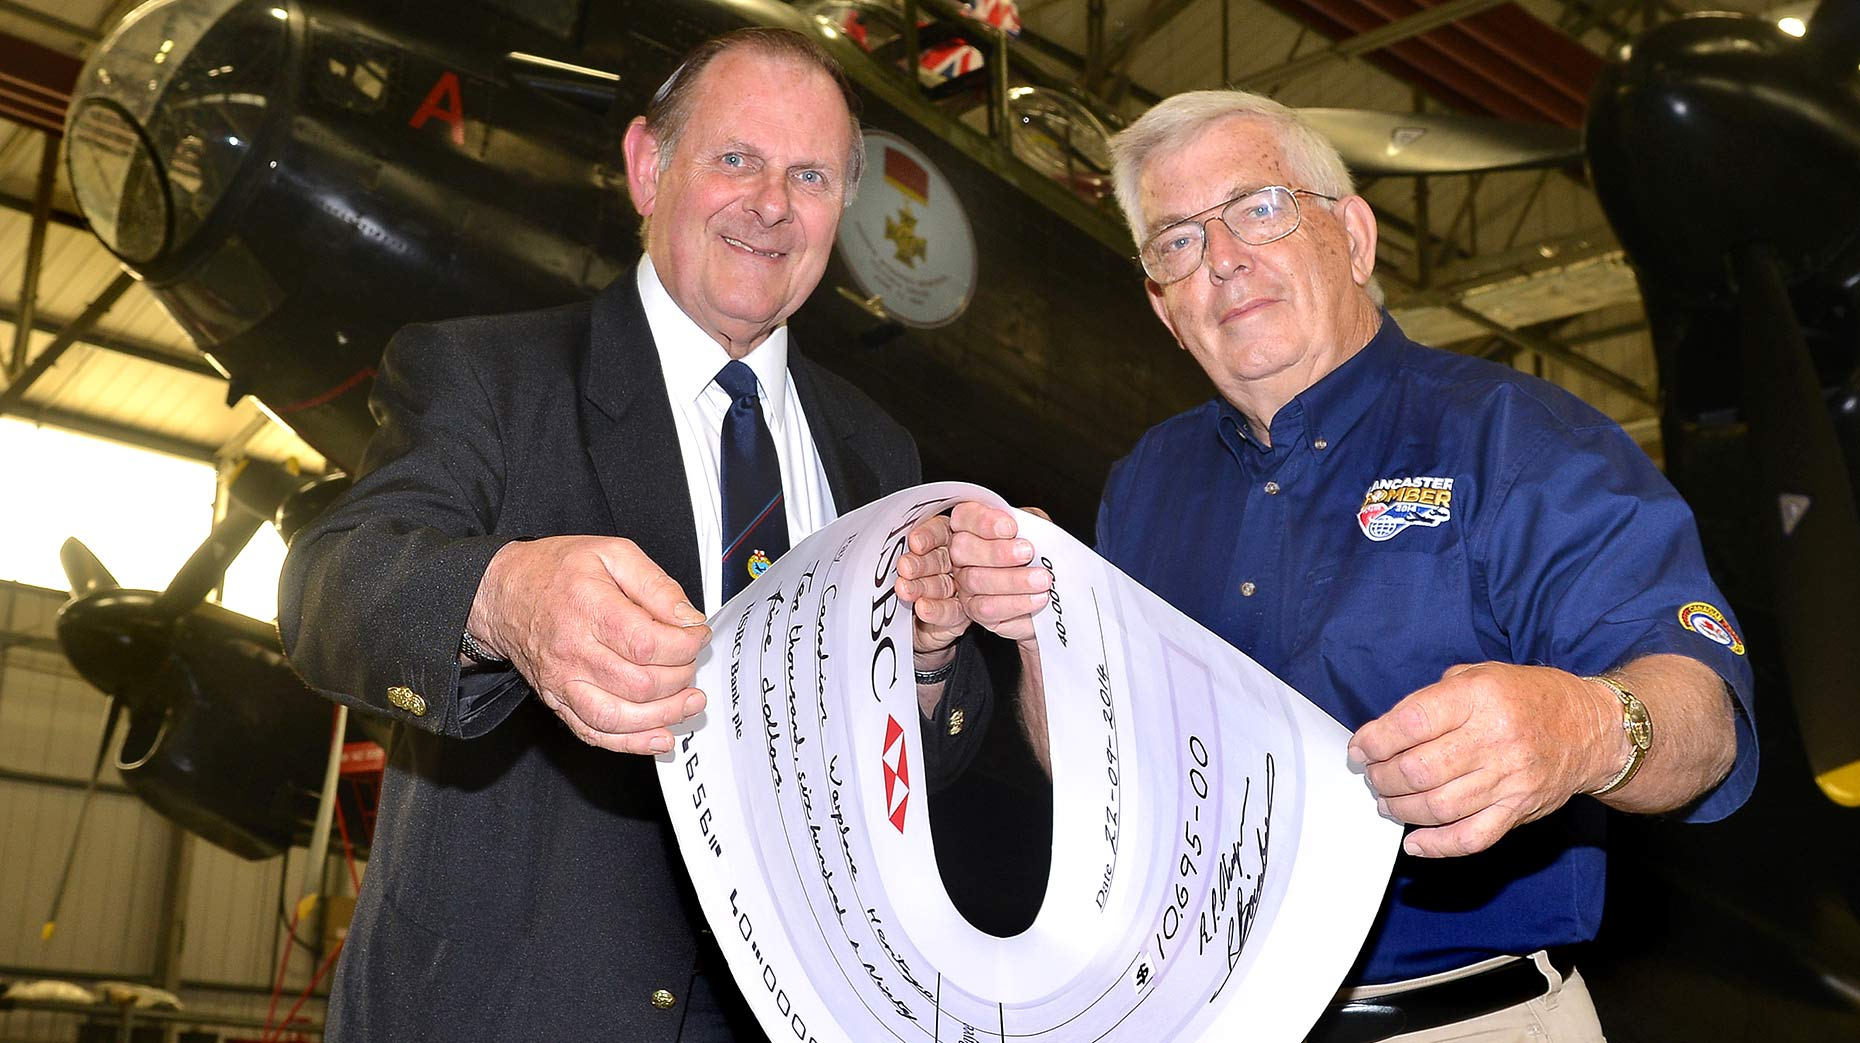 Lincolnshire's Lancaster Association Chairman Ray Bainborough presents its $C 10,695 cheque to Vera's Chief Pilot Don Schofield in front of the historic aircraft.